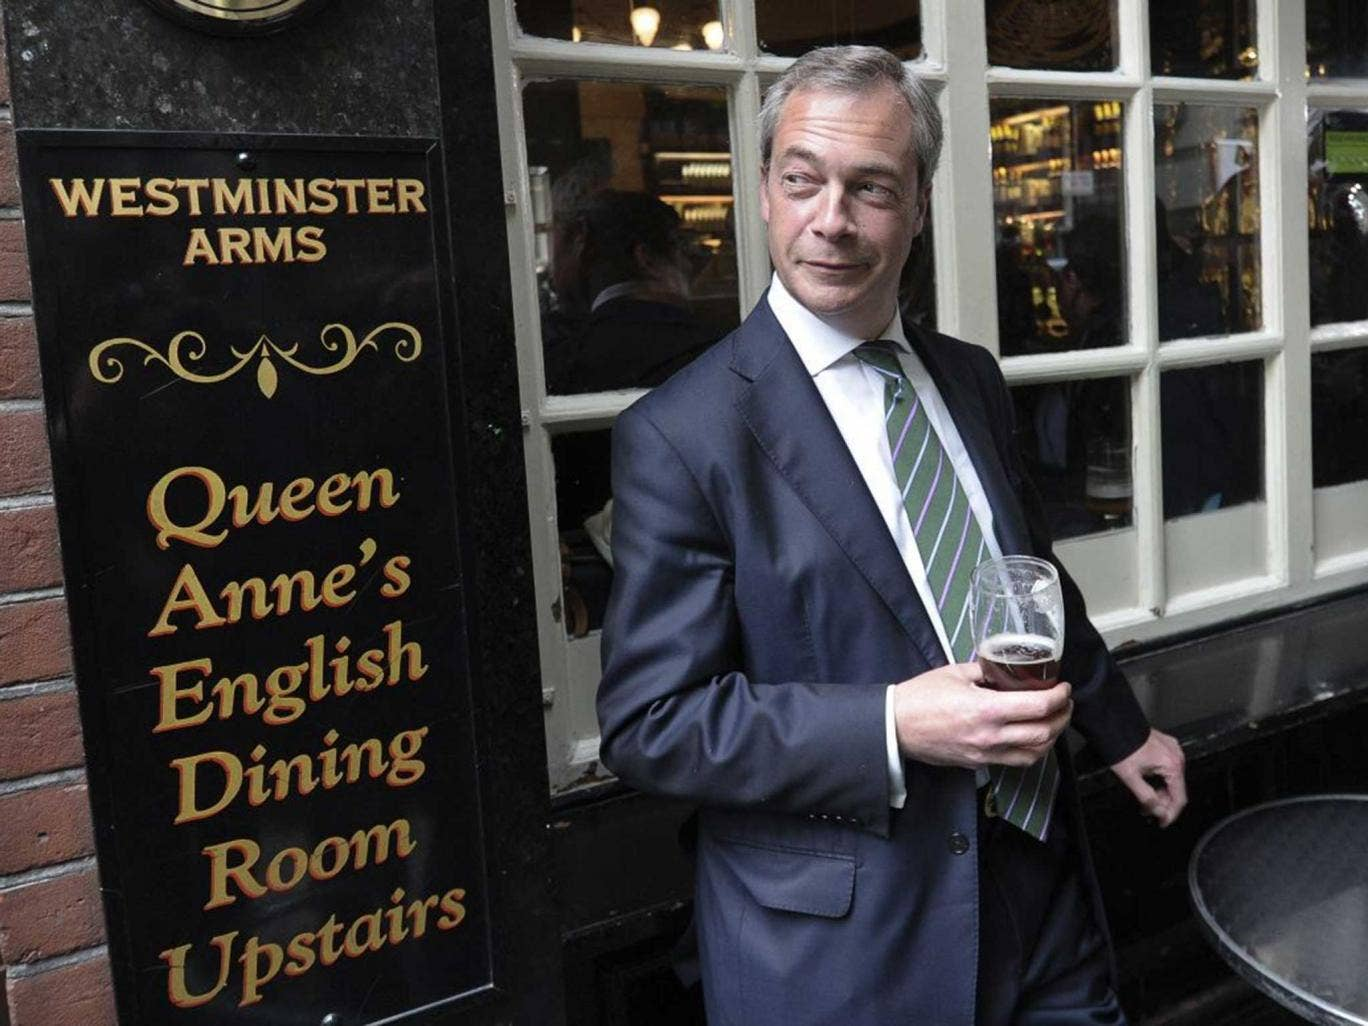 Nigel Farage outside the Westminster Arms